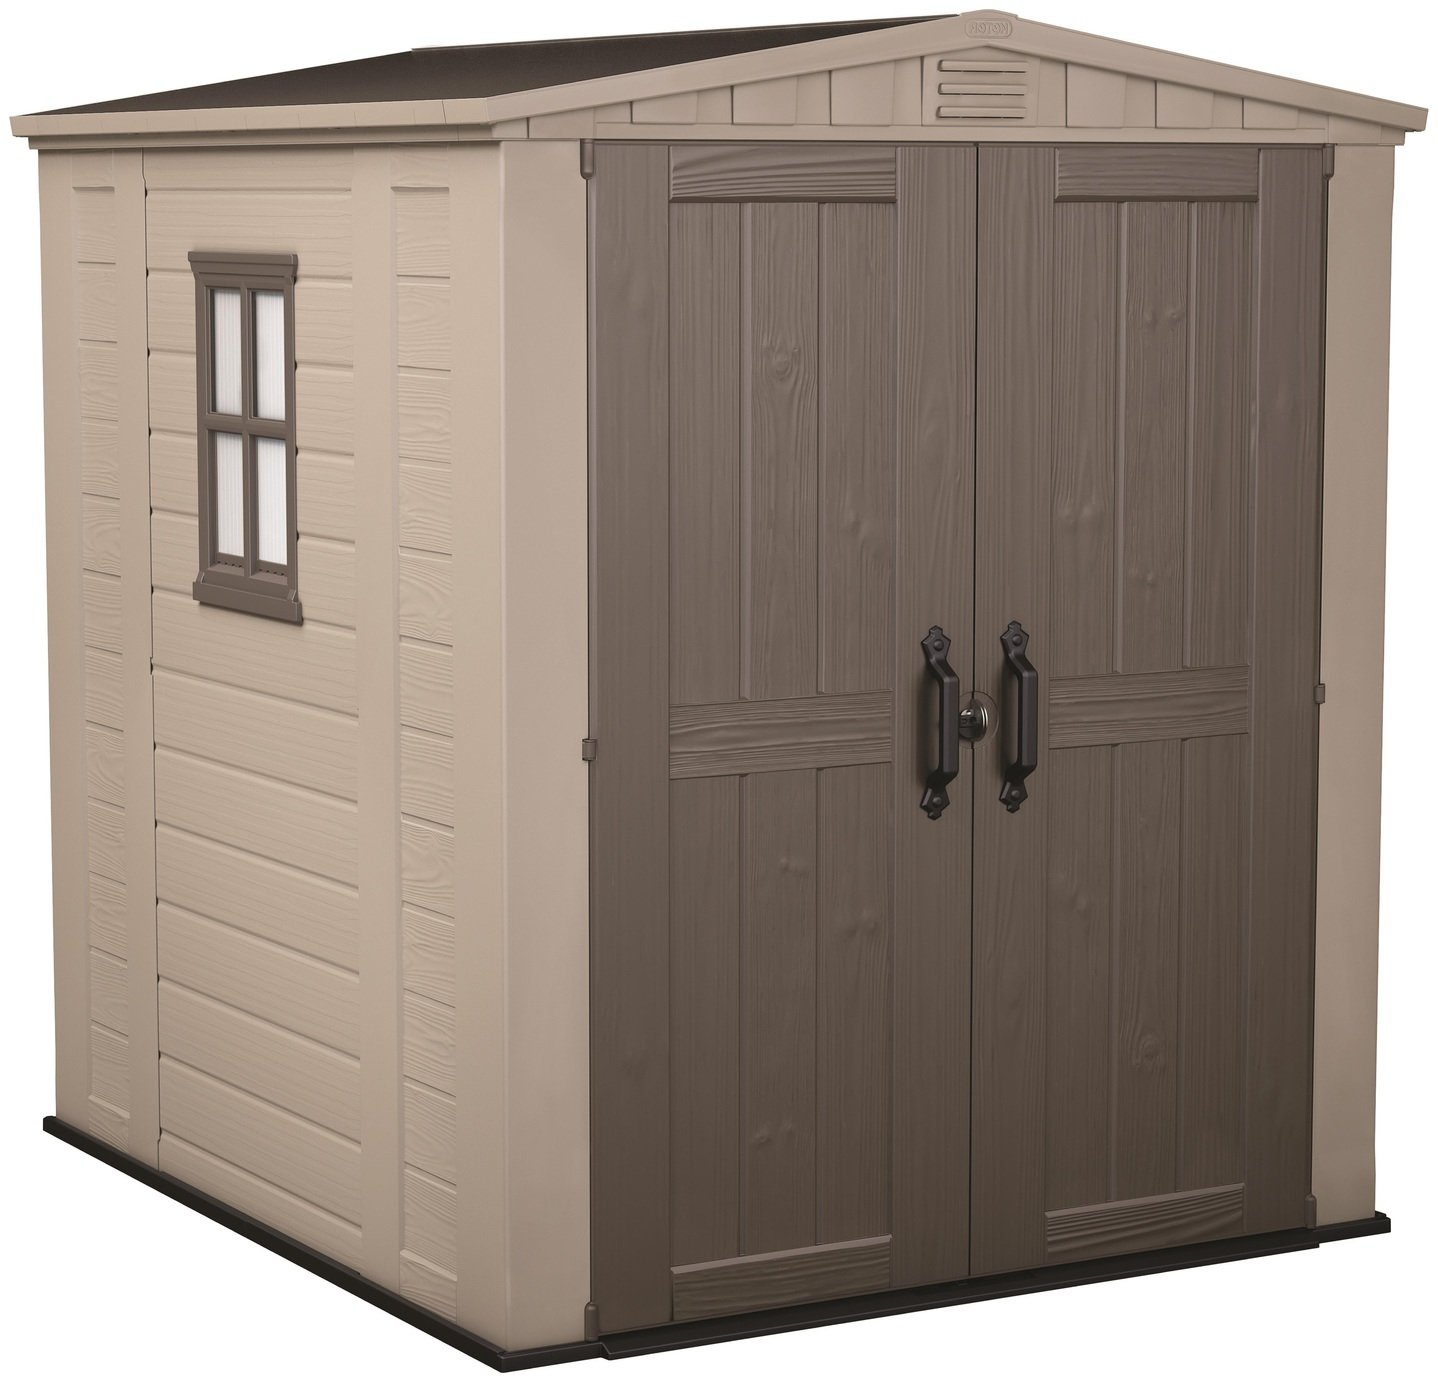 Keter Factor Apex Garden Storage Shed 6 x 6ft - Beige/Brown